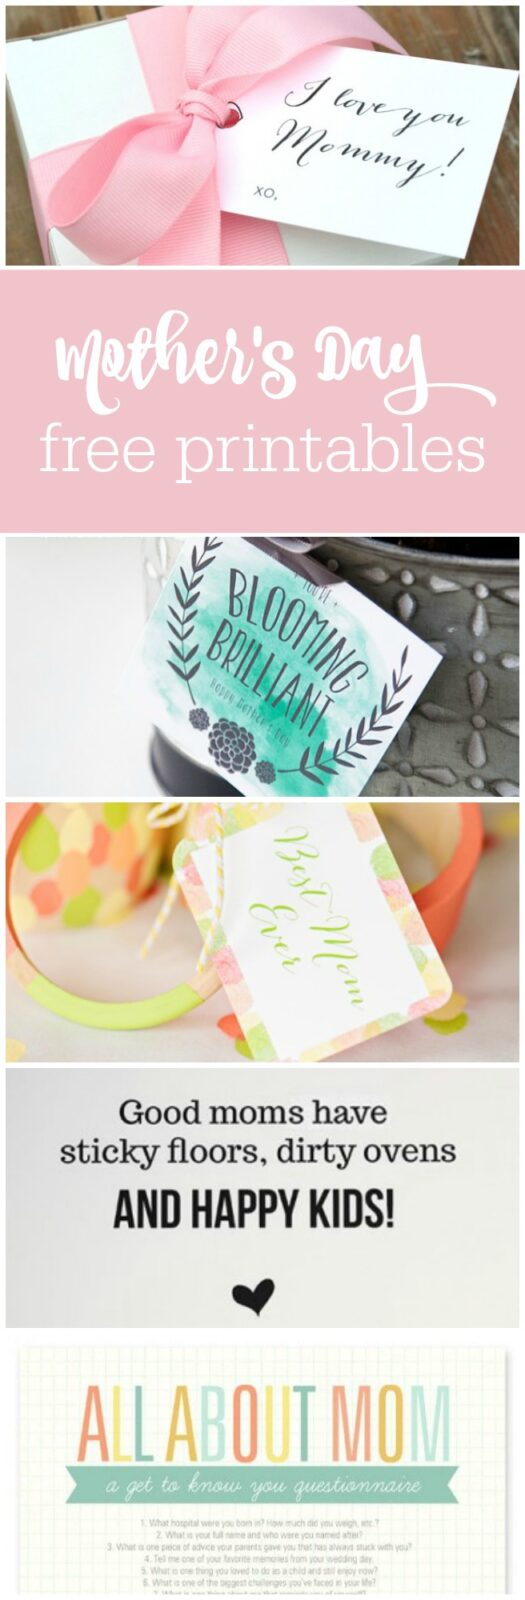 20 free mother's day free printables curated by The Party Teacher